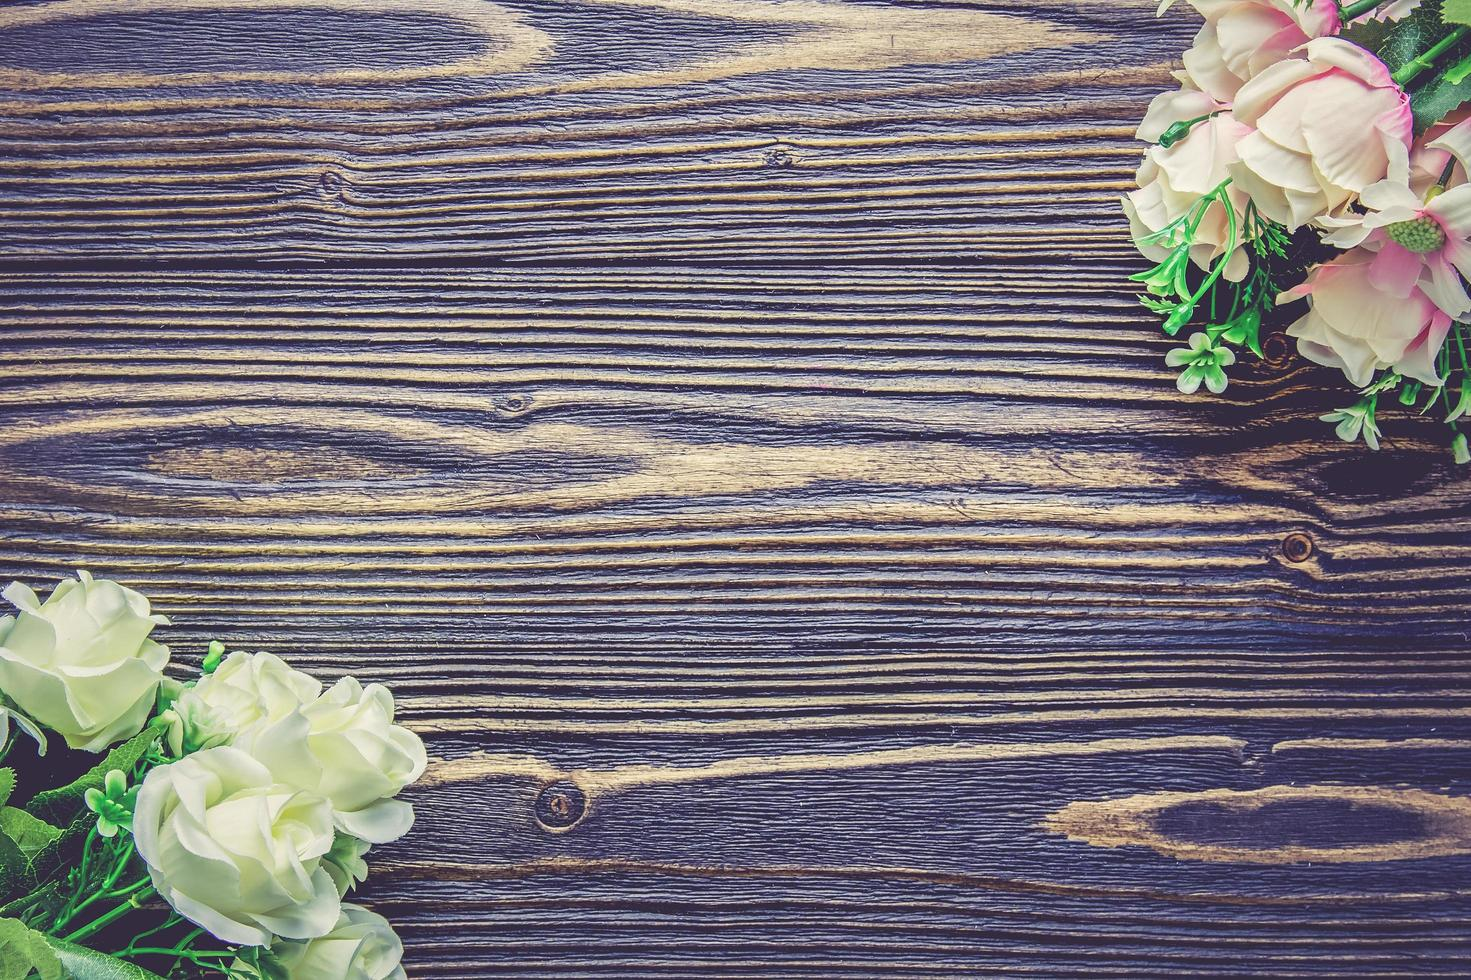 Bouquets on wooden table photo